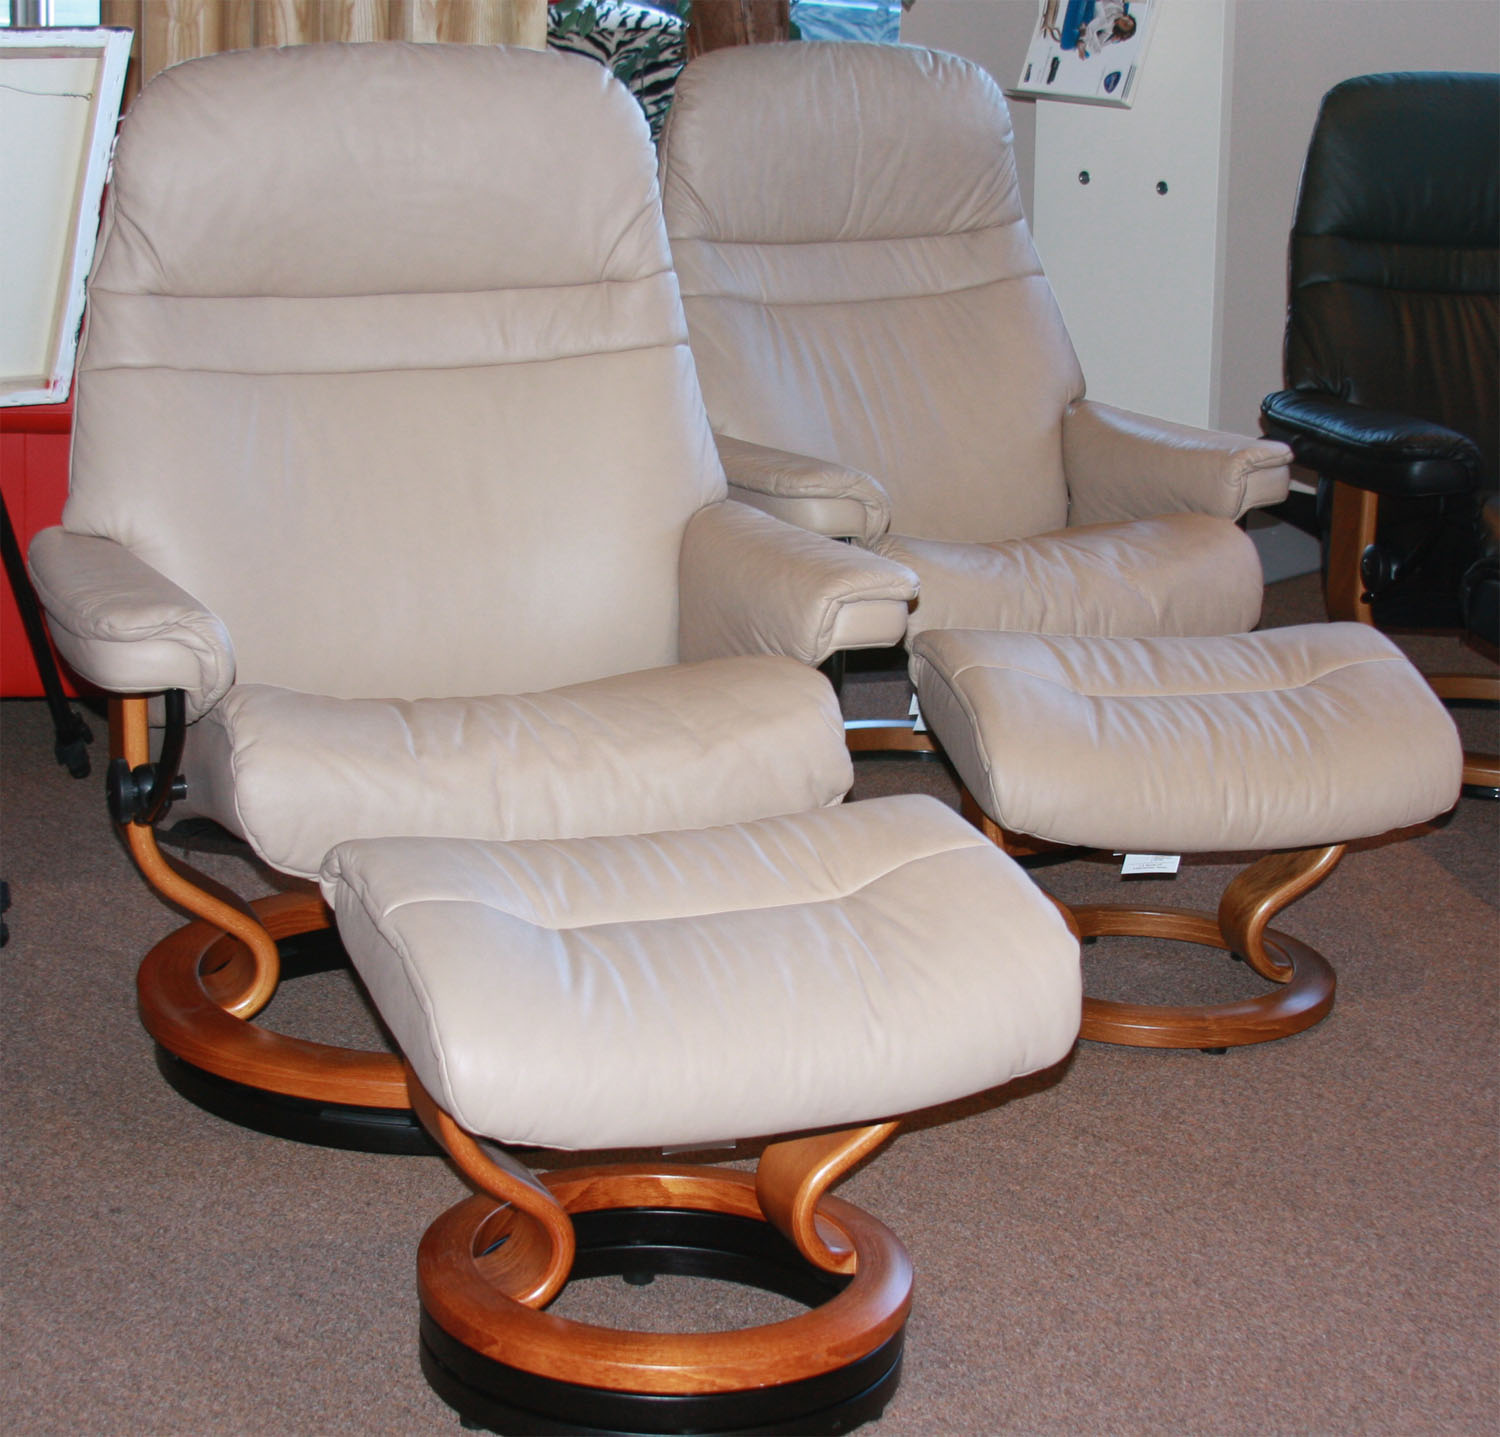 Stressless Sunrise Recliner in Sand Paloma Leather